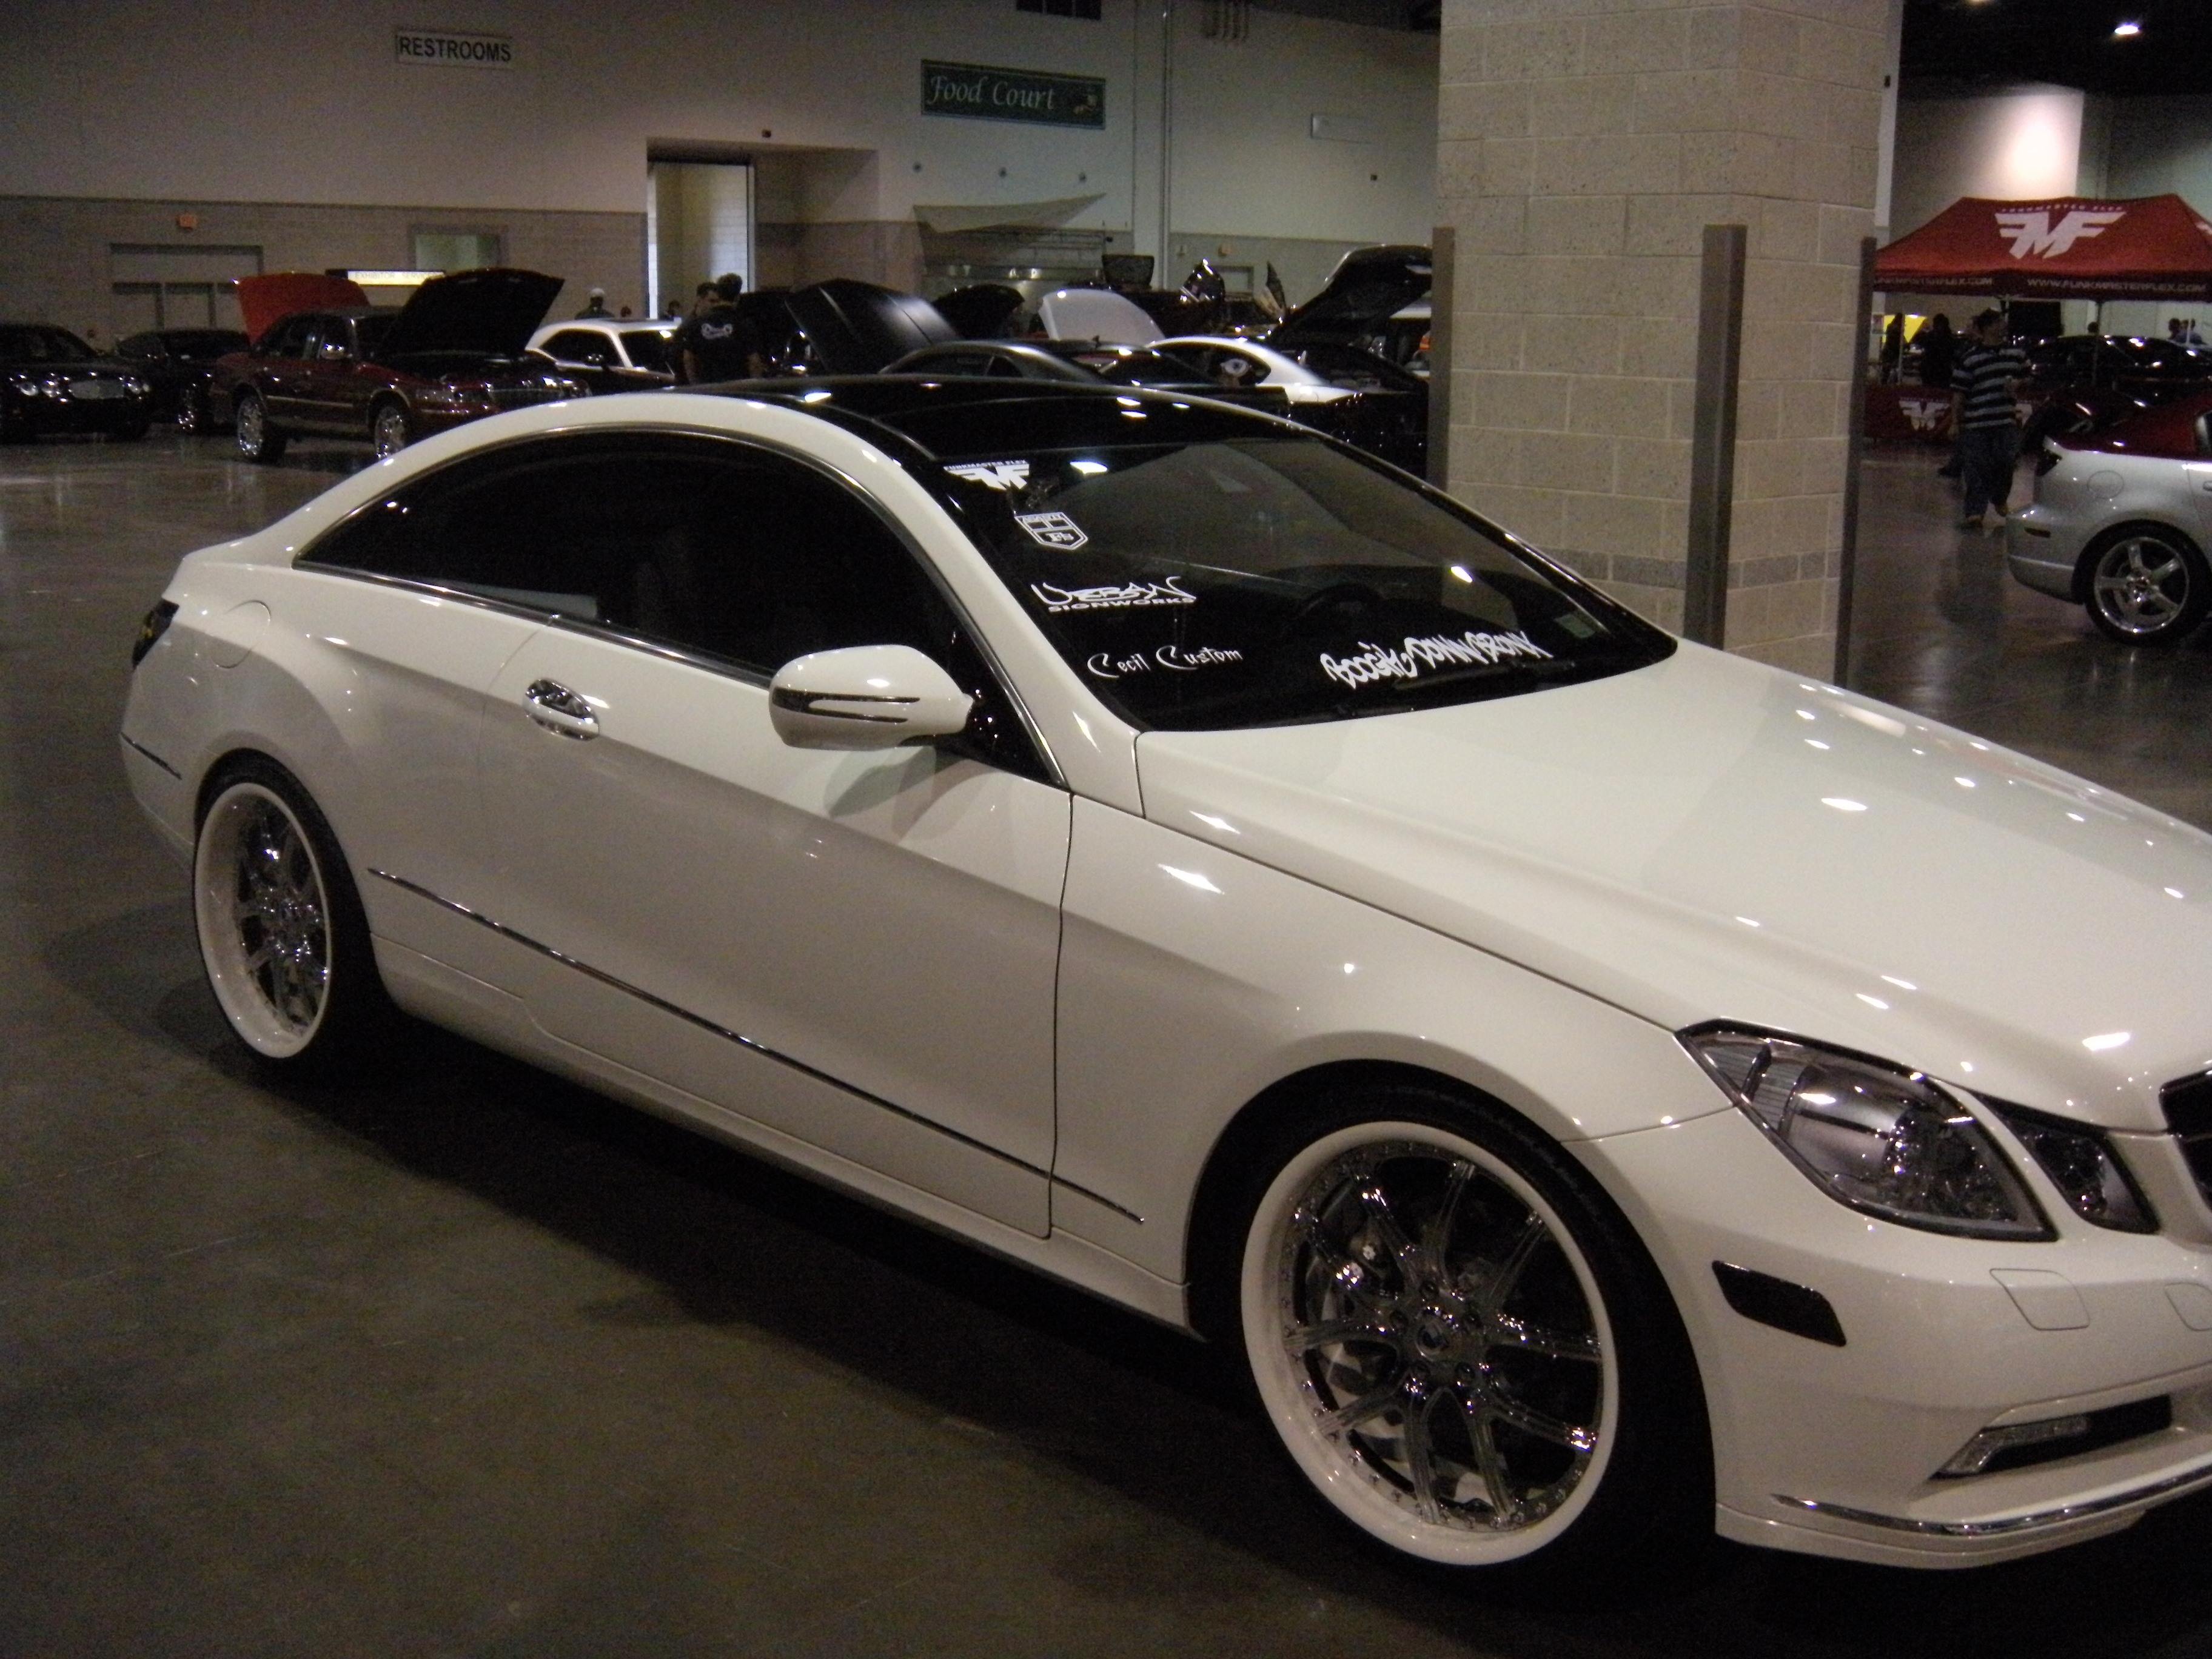 YoUnG_MoNeY_BX 2010 Mercedes-Benz E-Class 13358767